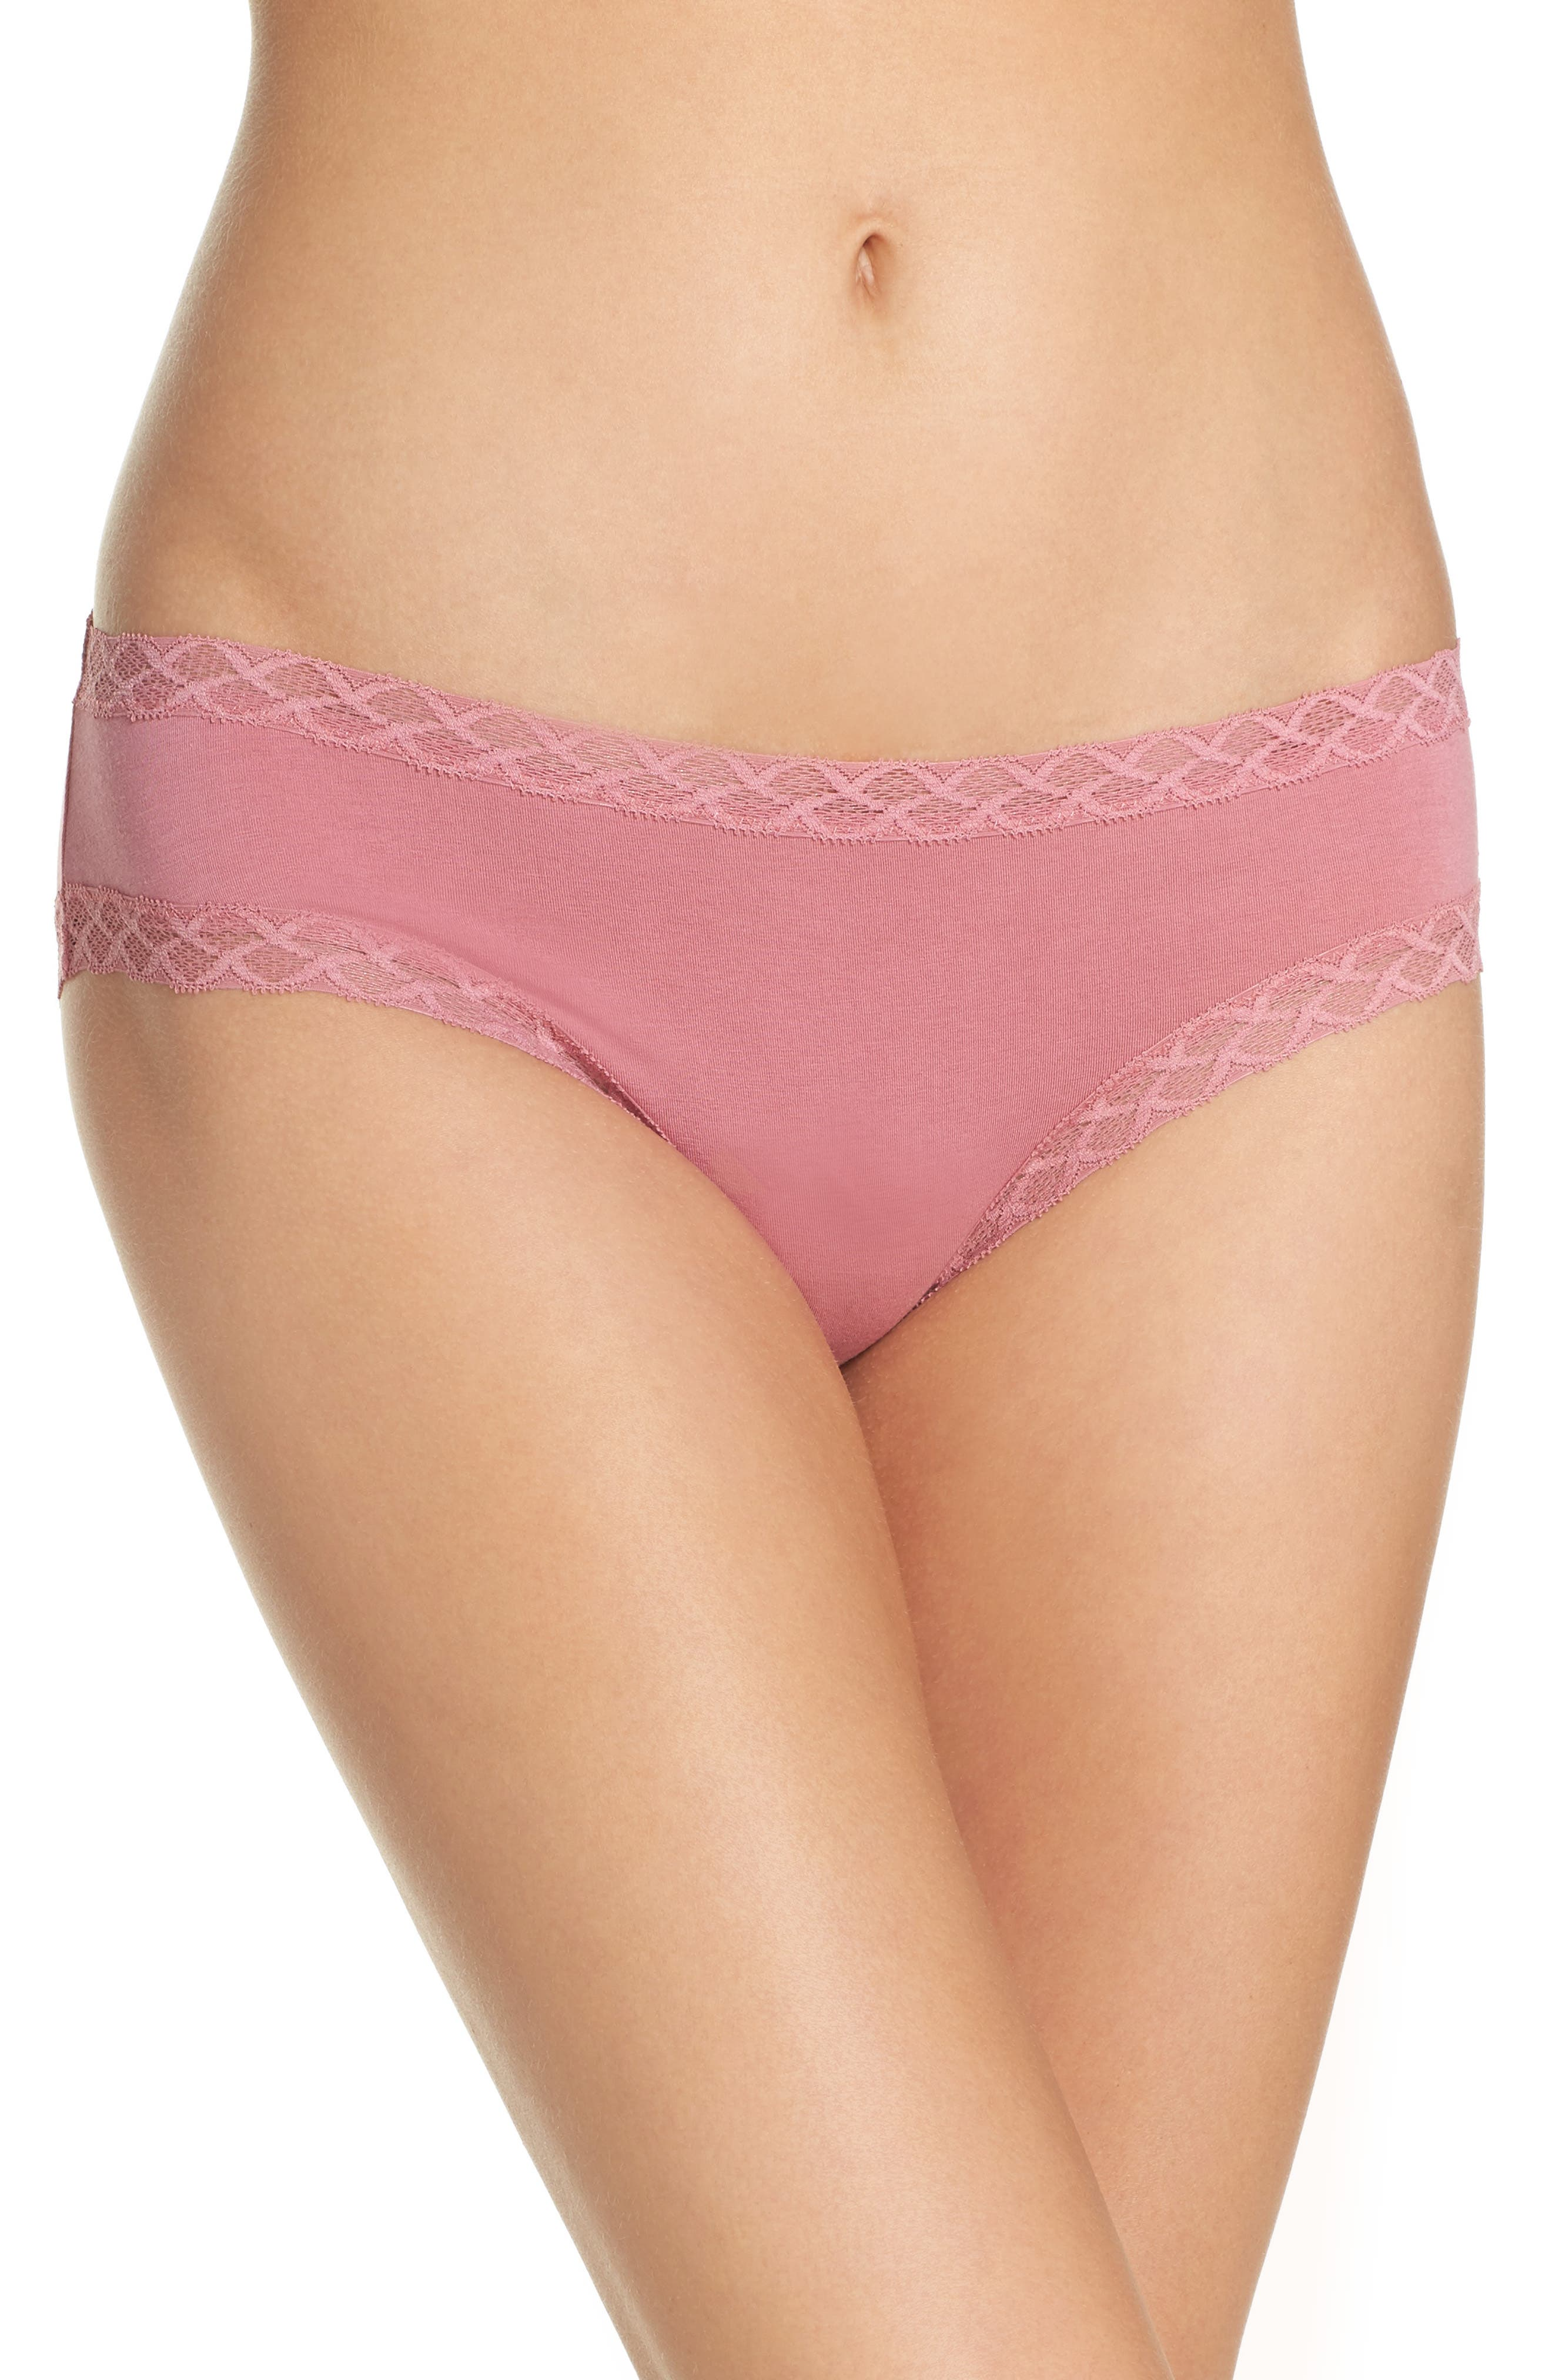 Alternate Image 1 Selected - Natori Bliss Cotton Girl Briefs (3 for $45)